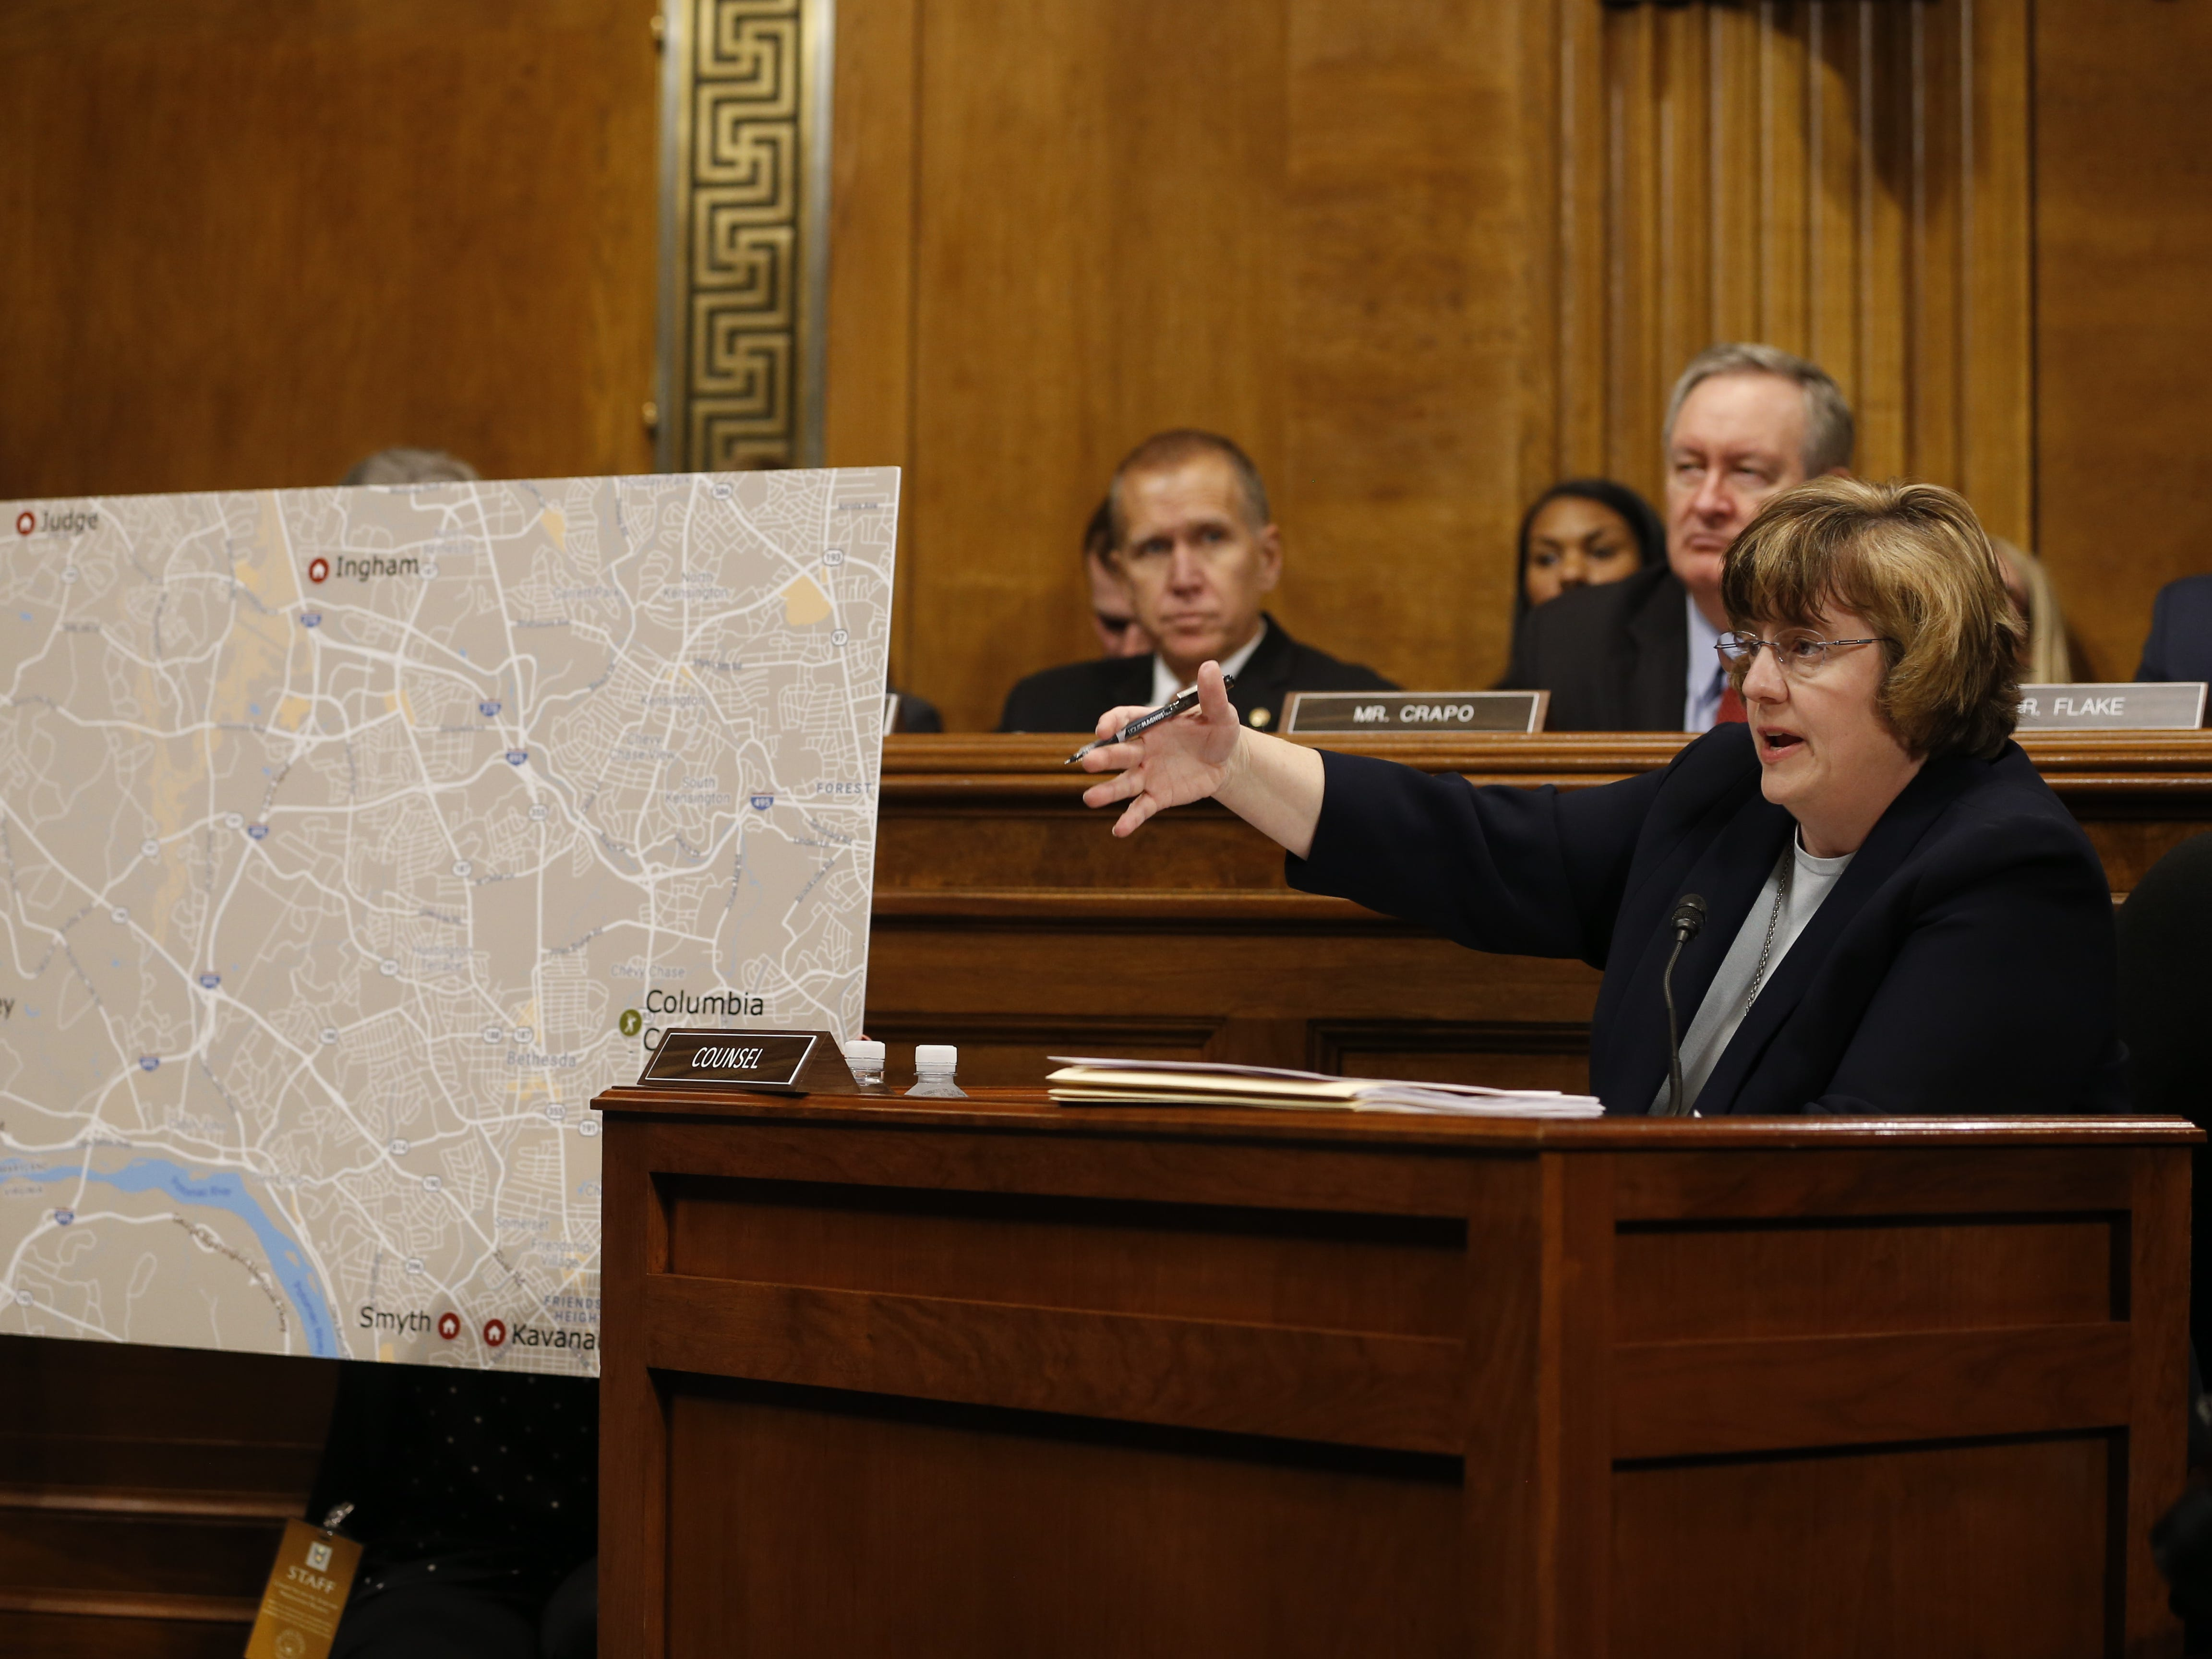 epa07051507 Republican prosecutor Rachel Mitchell (R) ask questions to Dr. Christine Blasey Ford (unseen) during the Senate Judiciary Committee hearing on the nomination of Brett Kavanaugh to be an associate justice of the Supreme Court of the United States, on Capitol Hill in Washington, DC, USA, 27 September 2018.US President Donald J. Trump's nominee to be a US Supreme Court associate justice Brett Kavanaugh is in a tumultuous confirmation process as multiple women have accused Kavanaugh of sexual misconduct.  EPA-EFE/MICHAEL REYNOLDS ORG XMIT: MRX033